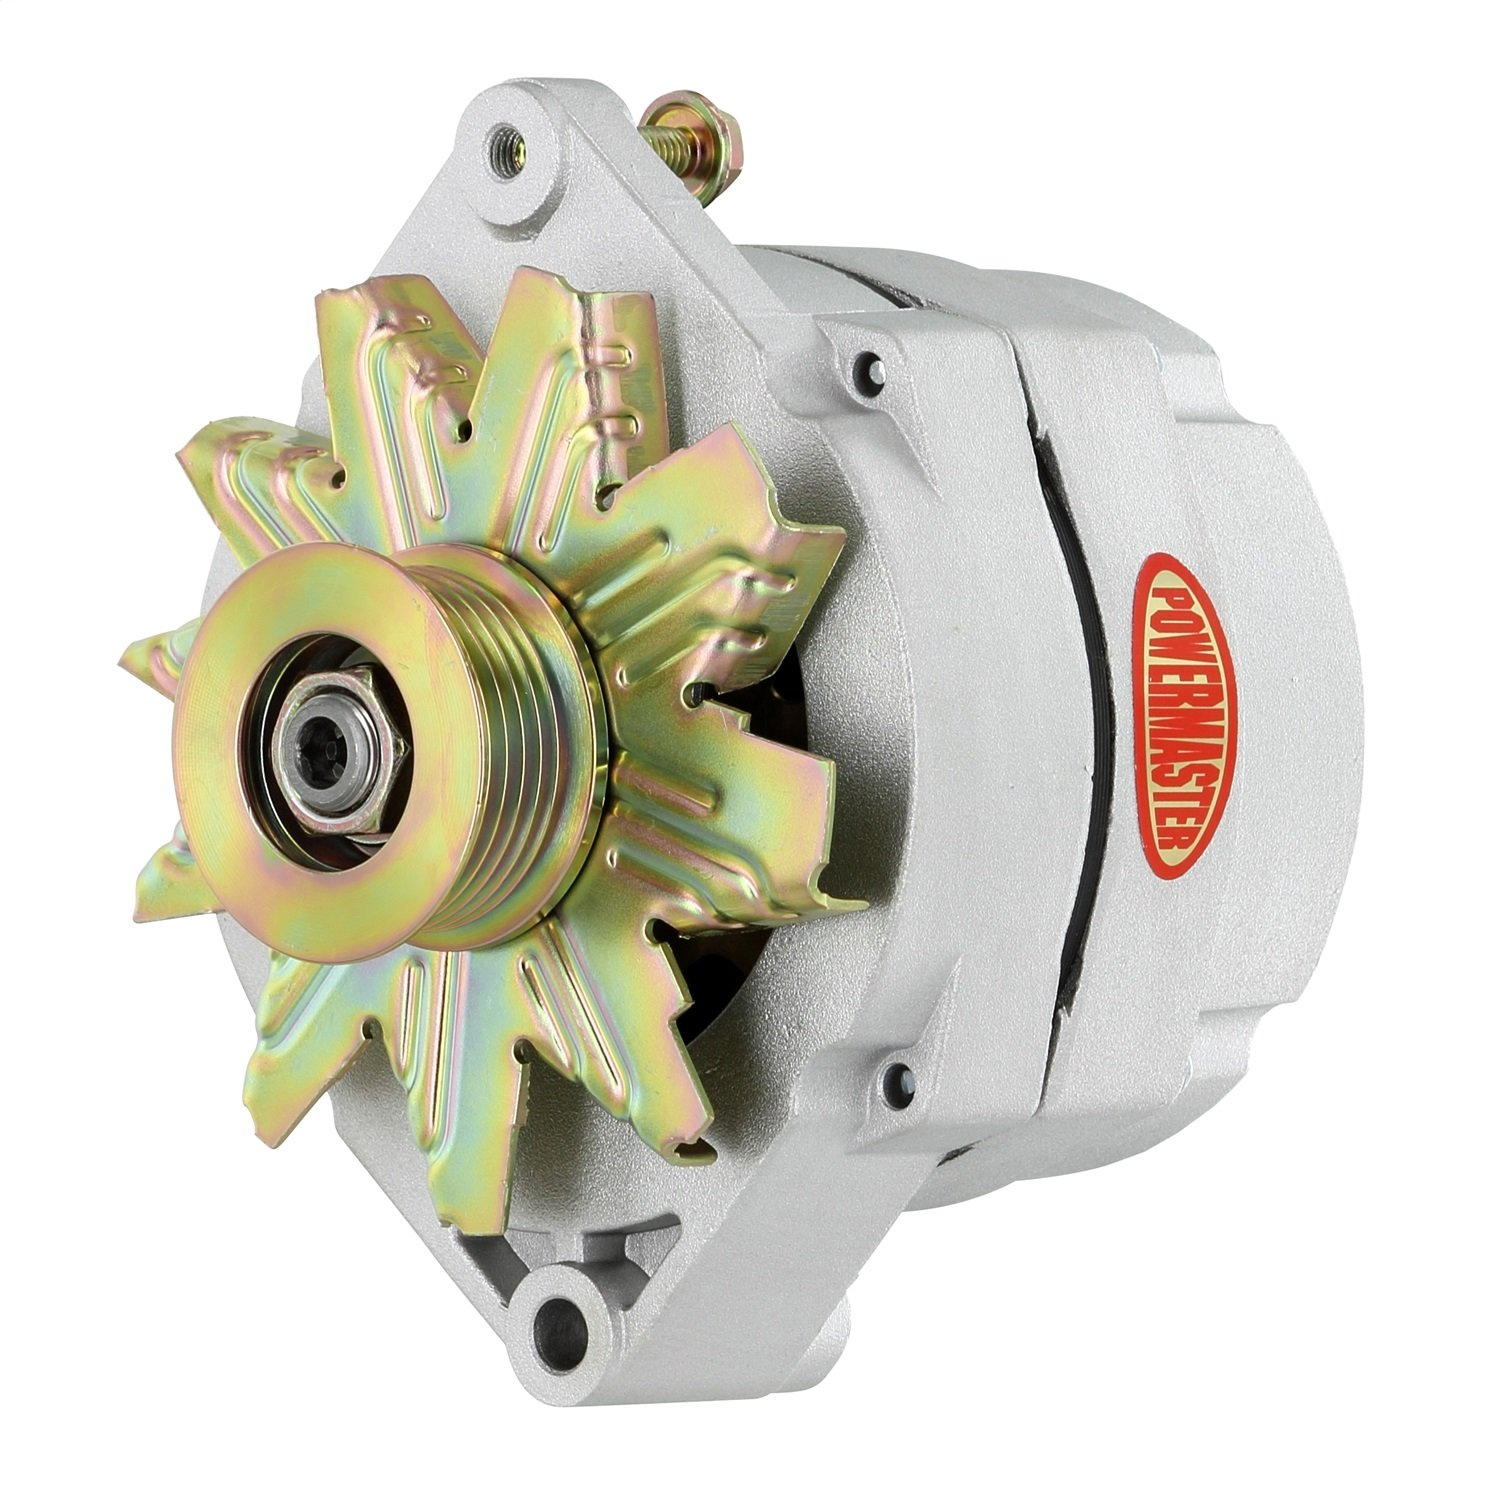 12SI 150A 6 Groove Pulley 1 or 3 Wire Powermaster Performance 47293-104 Natural Alternator